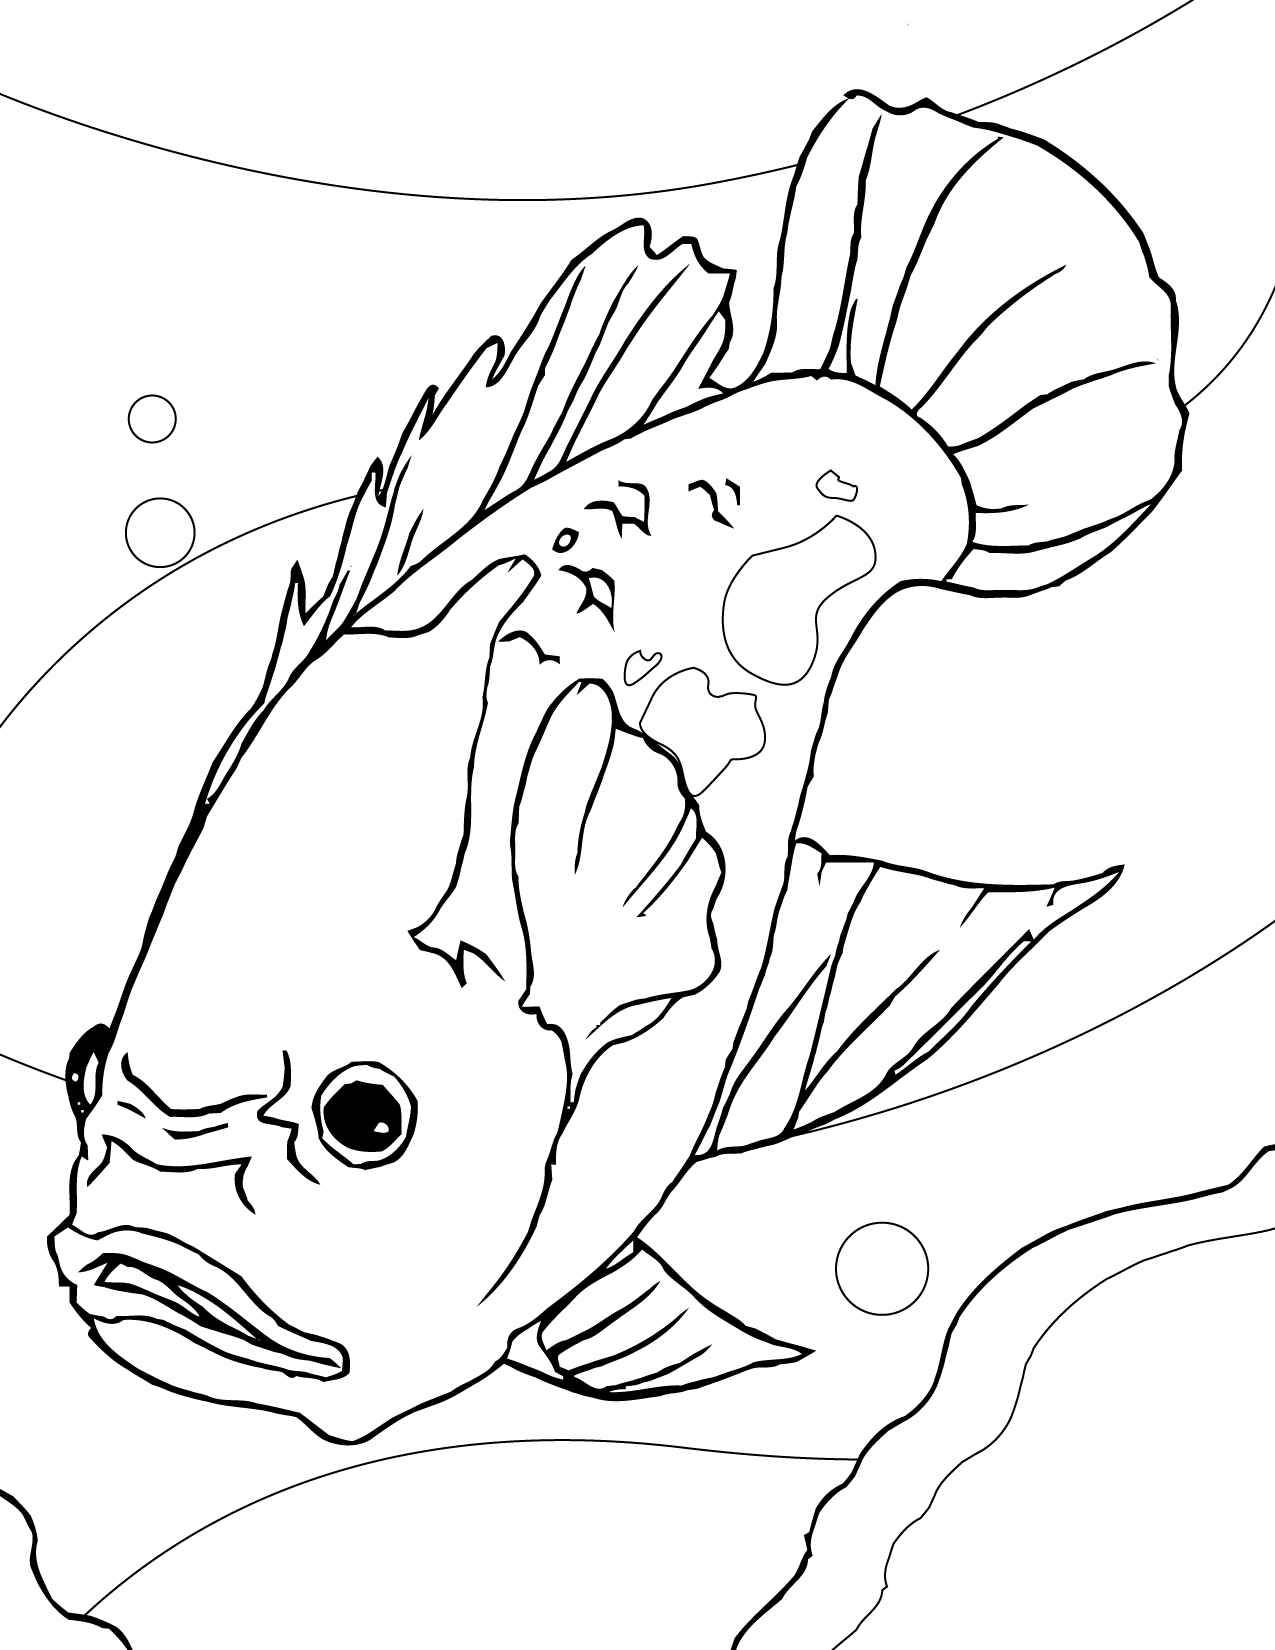 tropical fish coloring pages fish drawing images at getdrawings free download pages tropical fish coloring